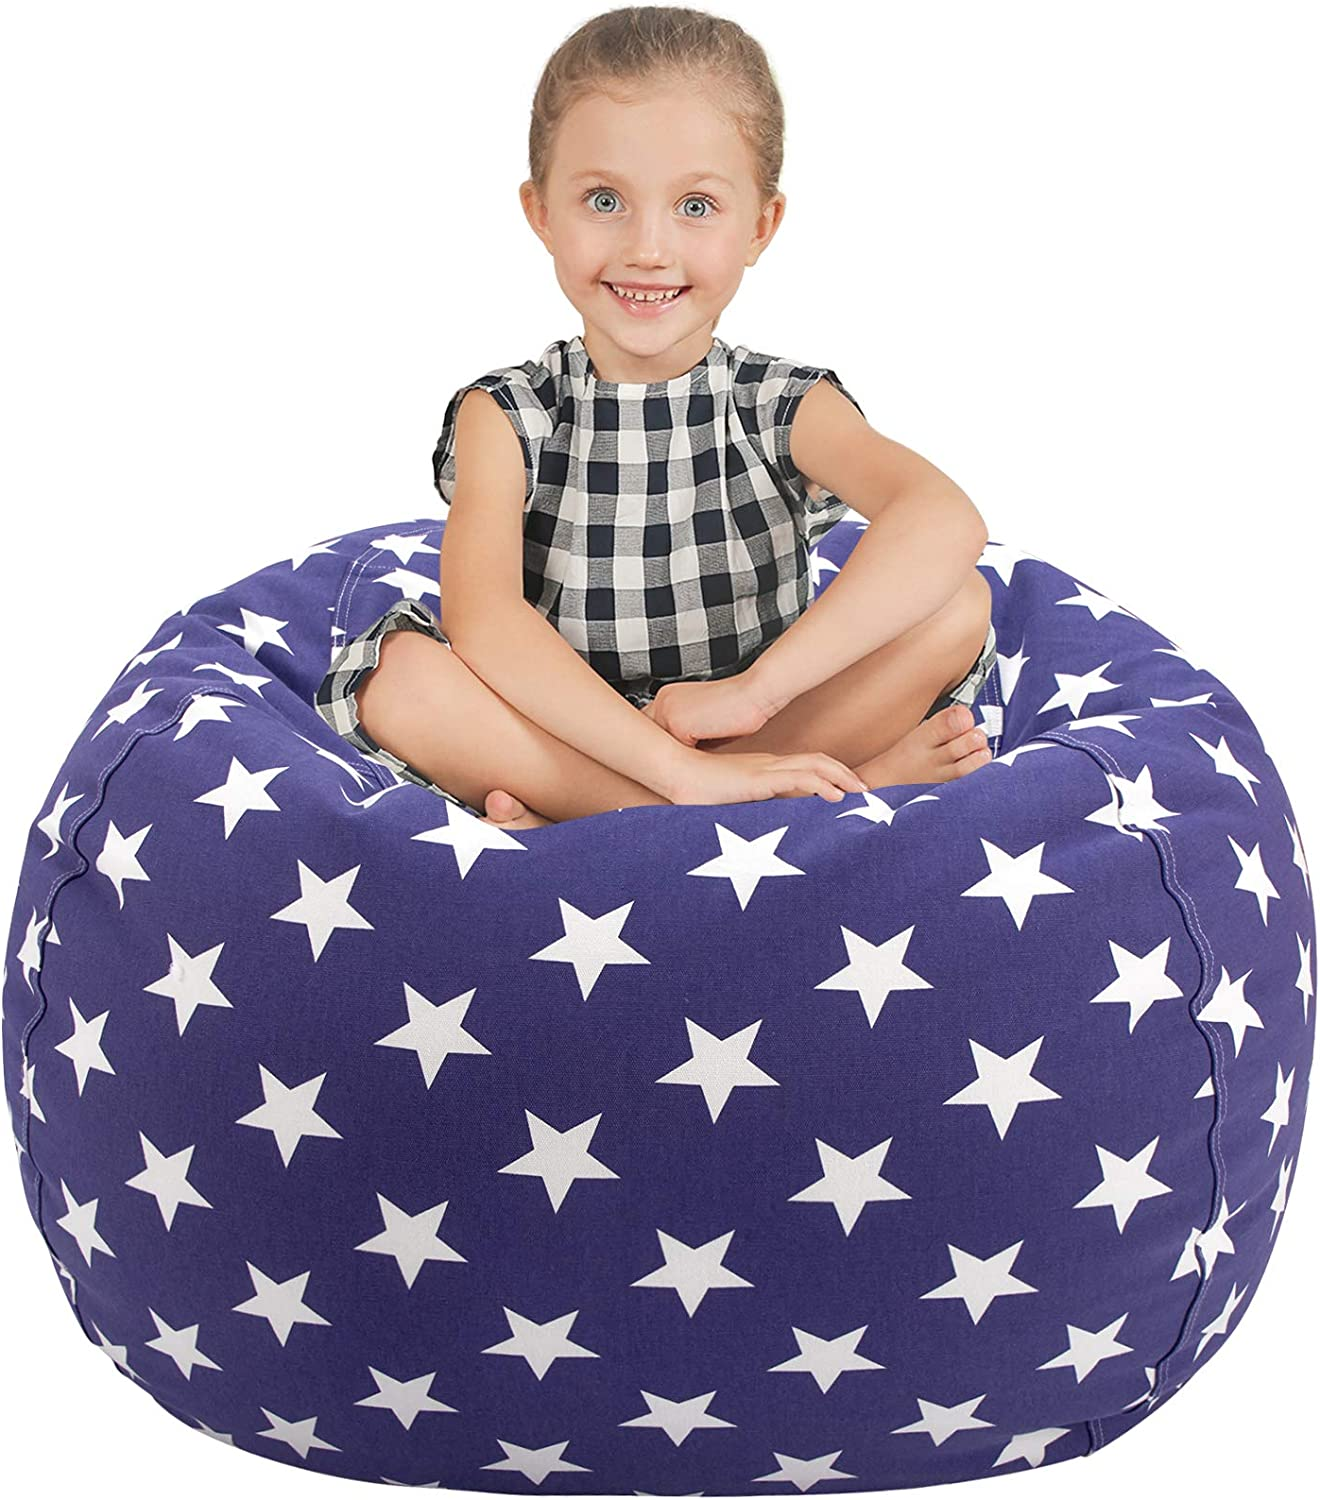 Aubliss Stuffed Animal Storage Bean Bag Chair Cover (No Beans),Stuff and Sit Storage Bean Bag for Kids Toy Storage, Large 38